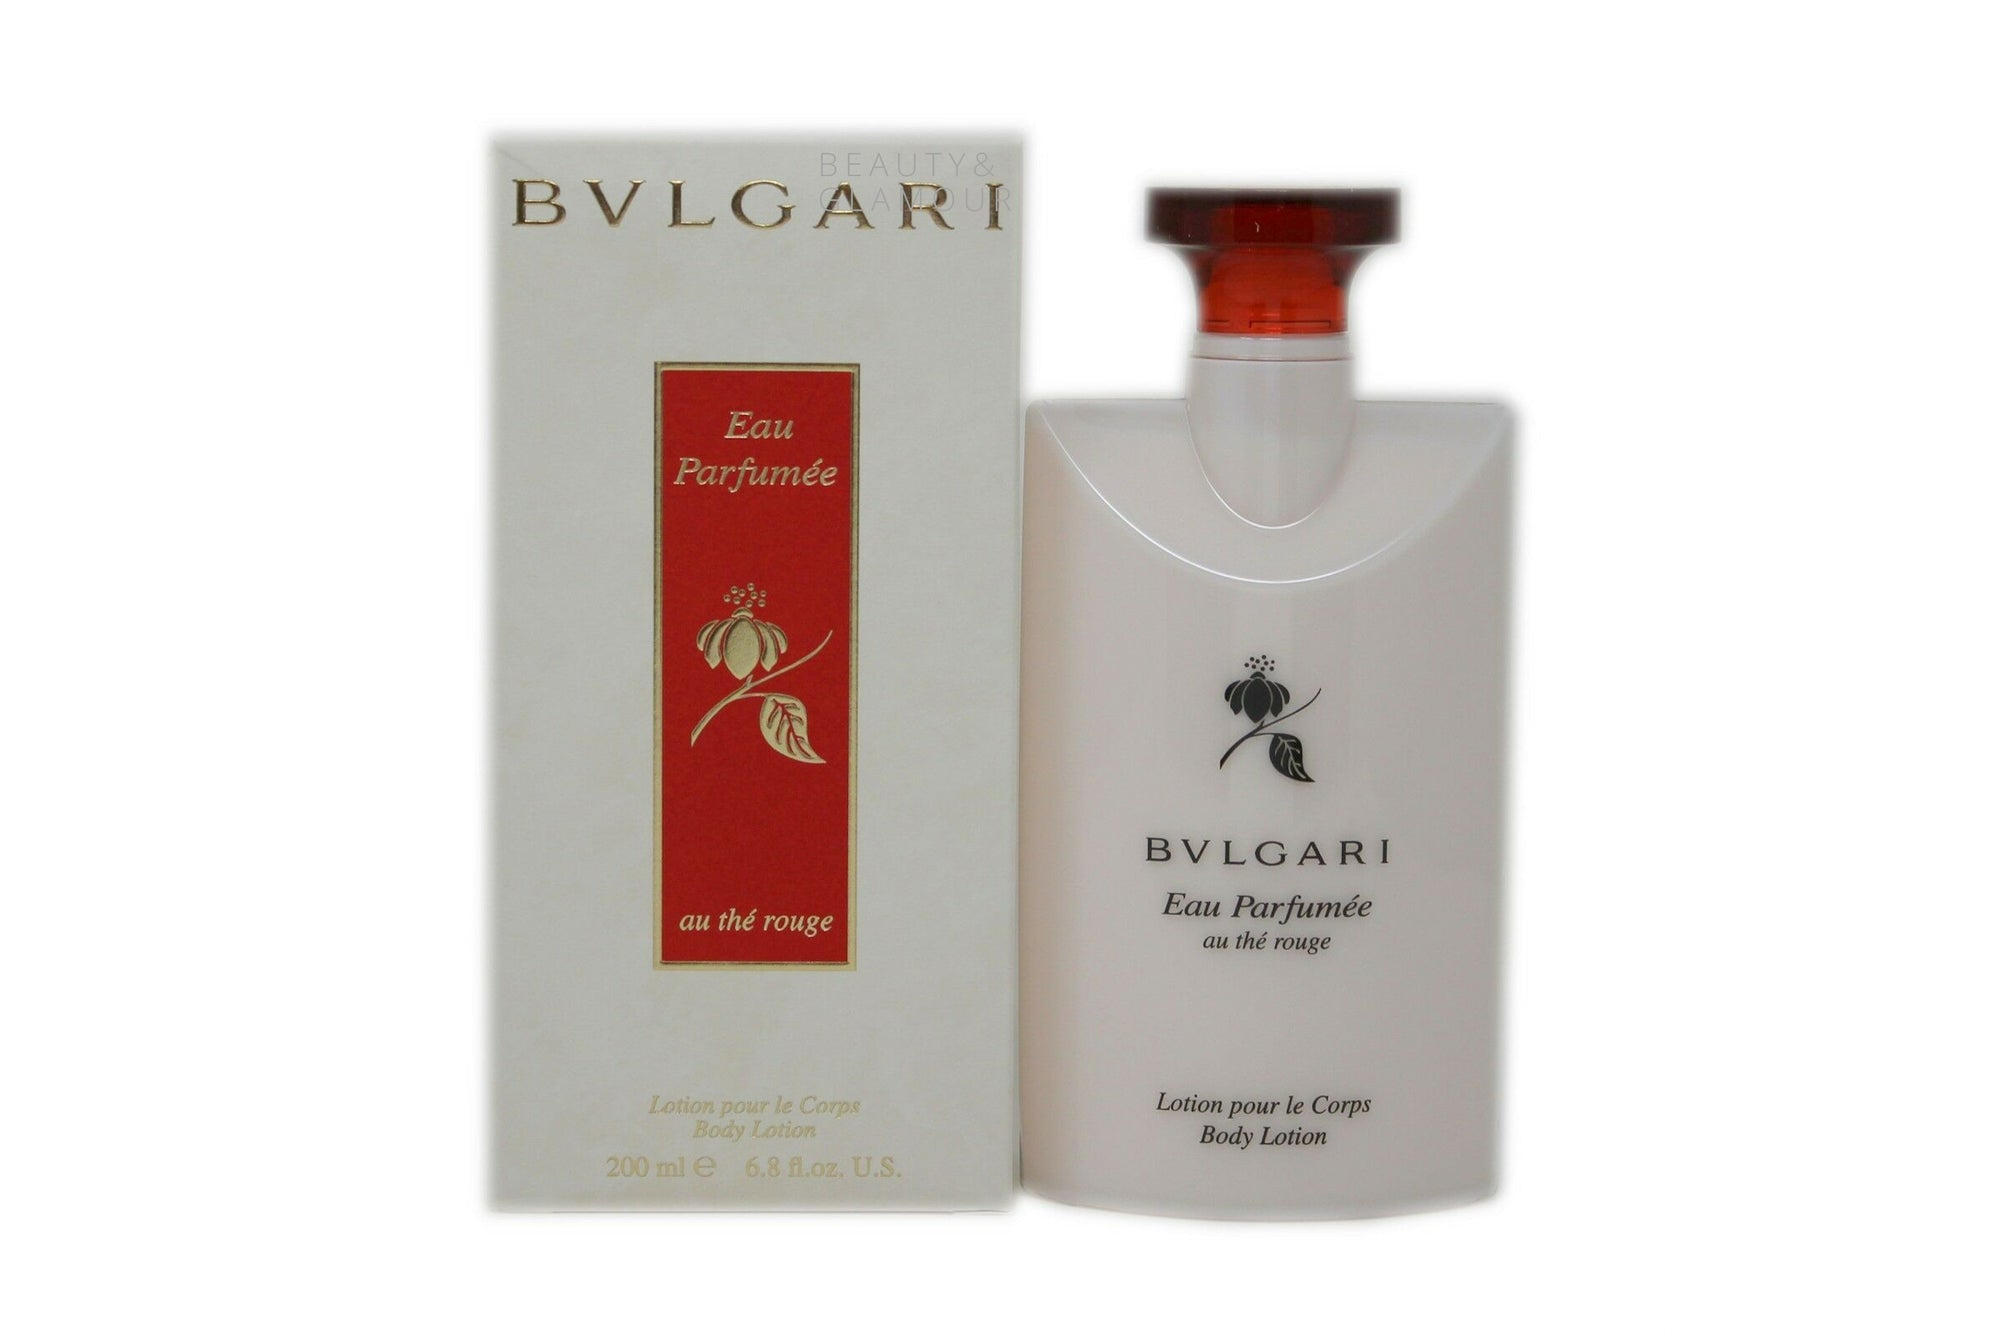 BVLGARI EAU PARFUMEE AU THE ROUGE BODY LOTION